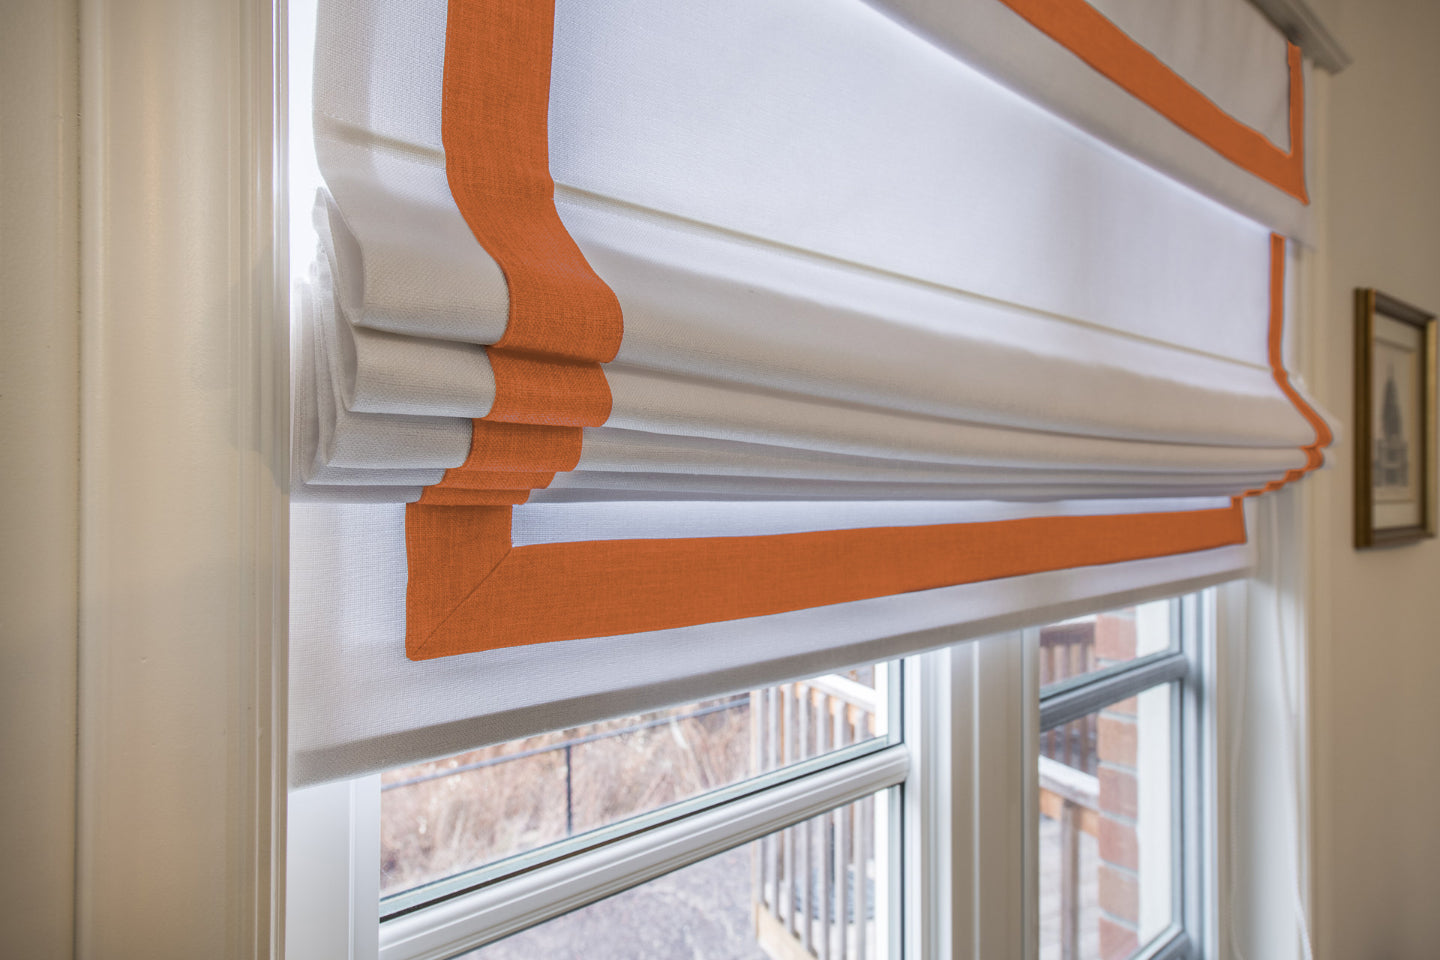 Custom Made roman shade Relaxed Roman Shade White with Orange Borders with chain mechanism